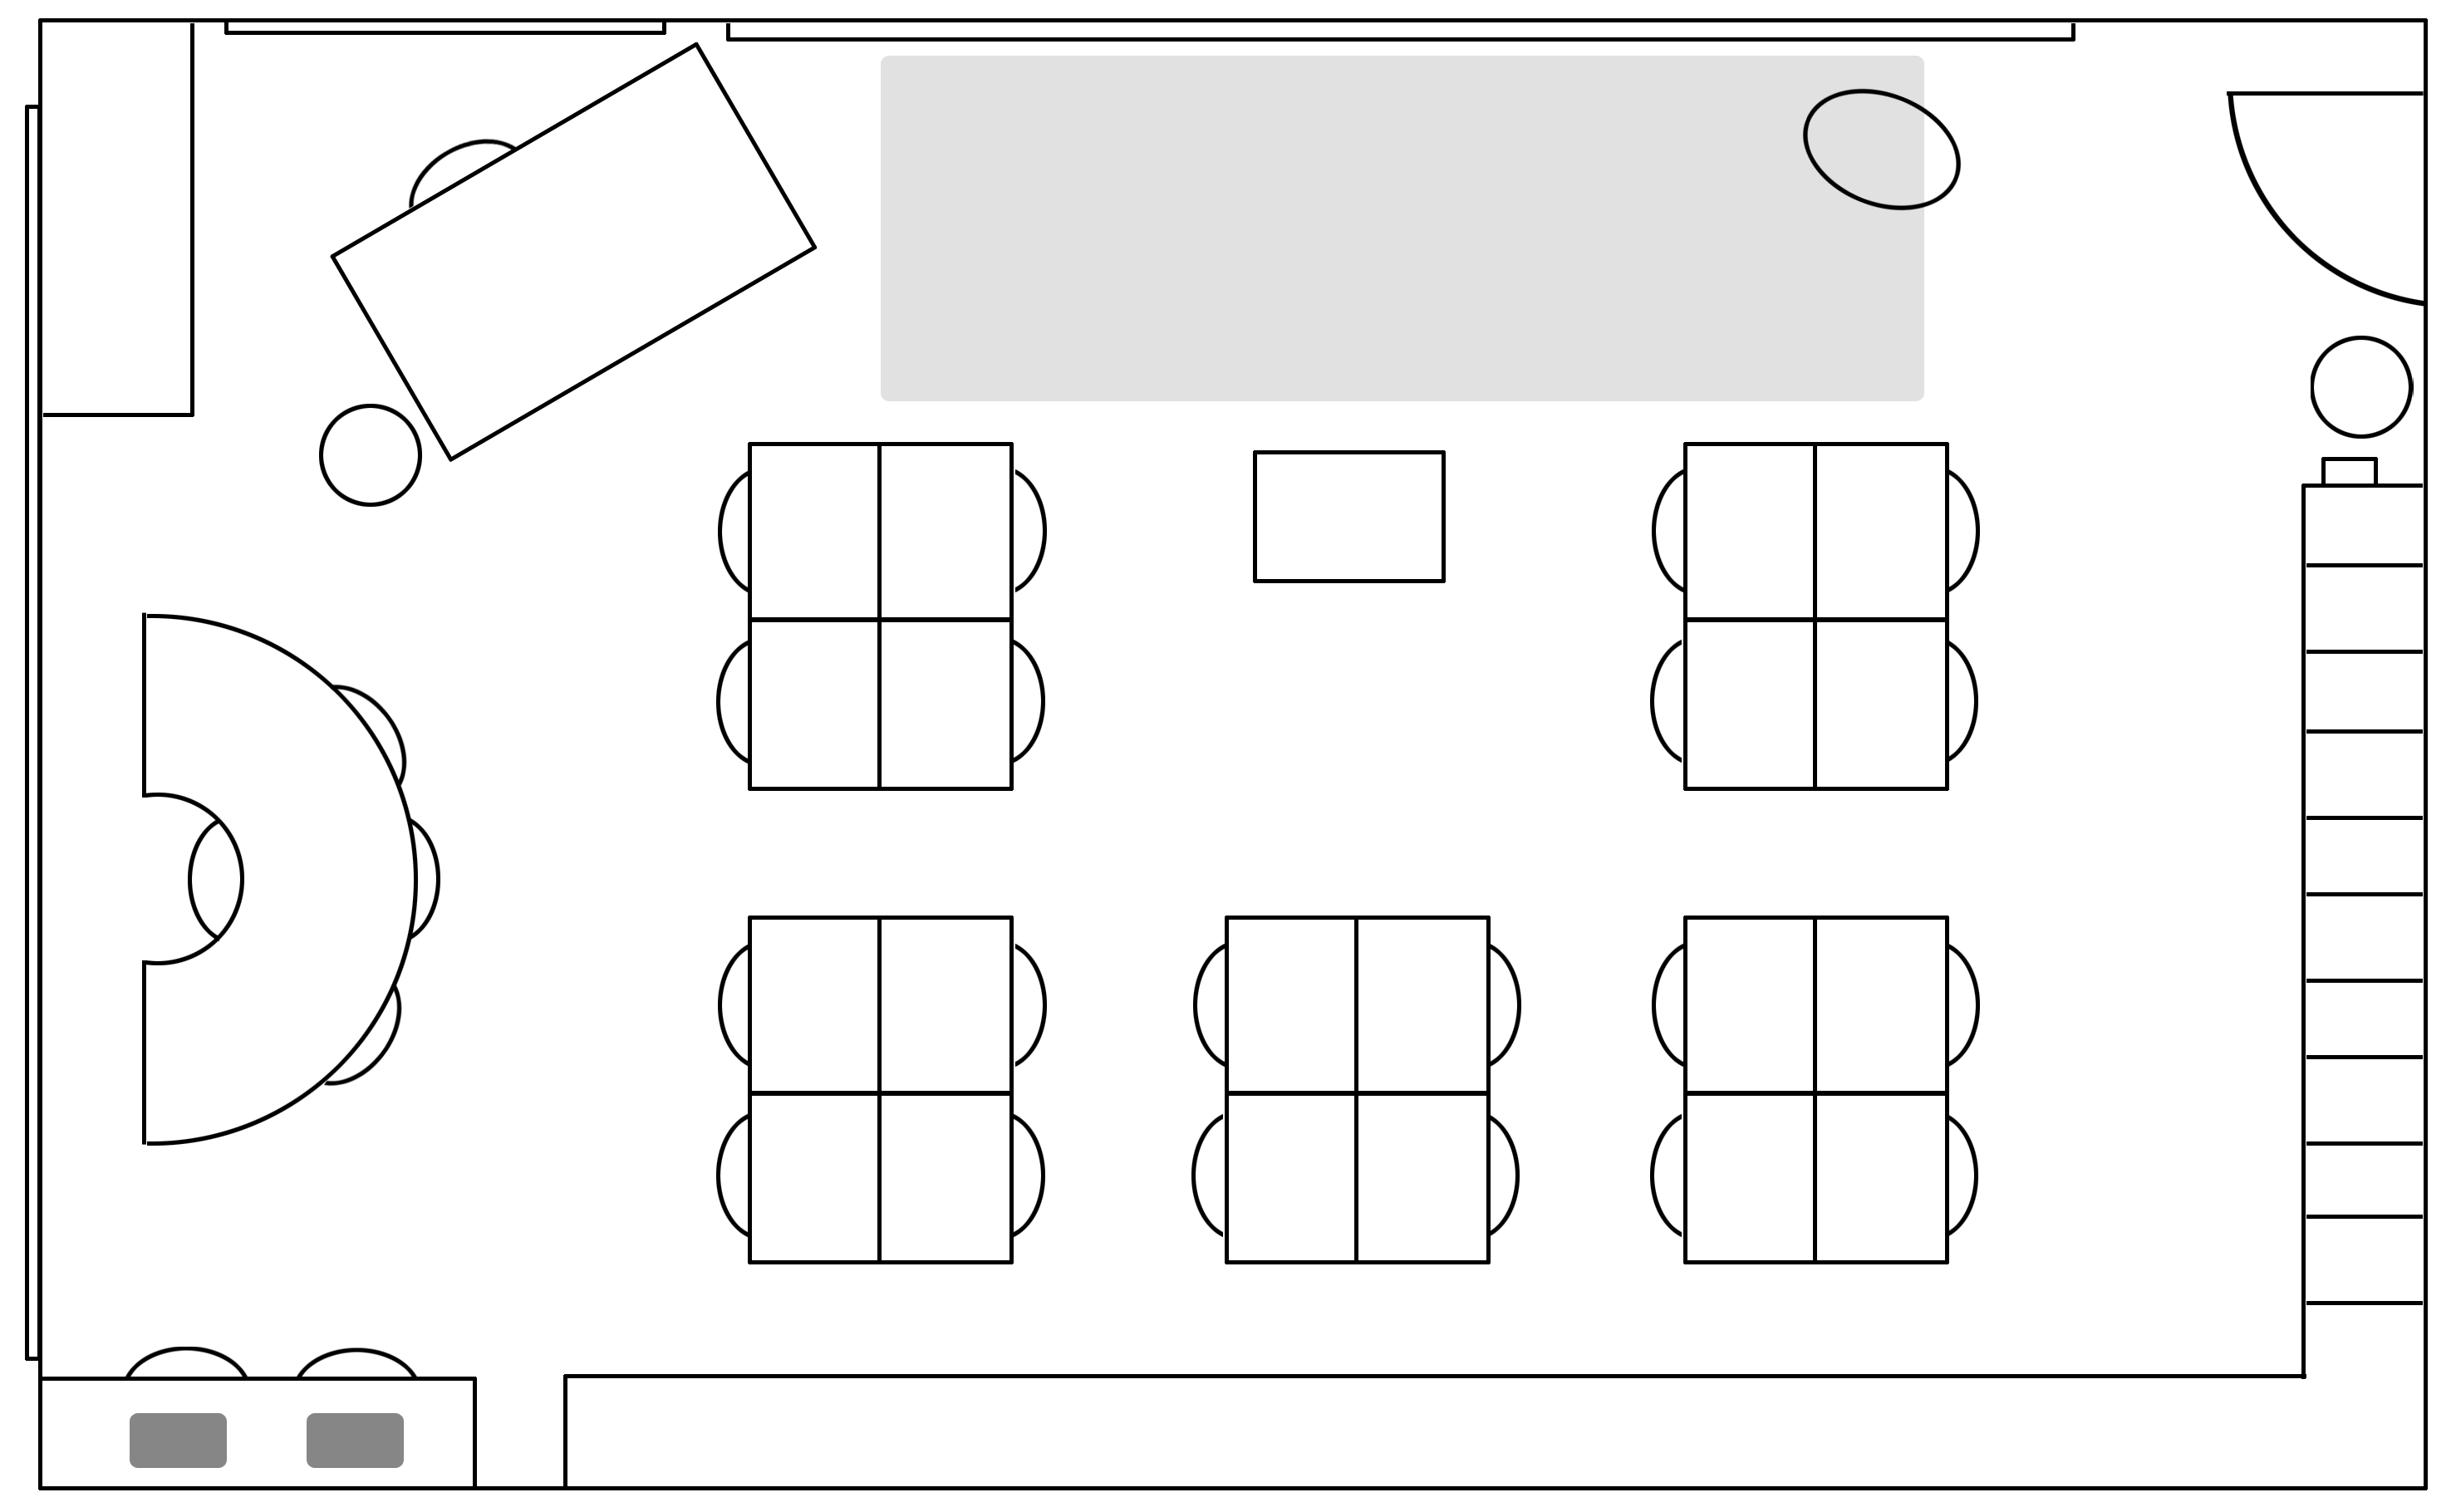 Daycare Floor Plan Ideas Creating A Classroom Floor Plan Conceptdraw Helpdesk 29